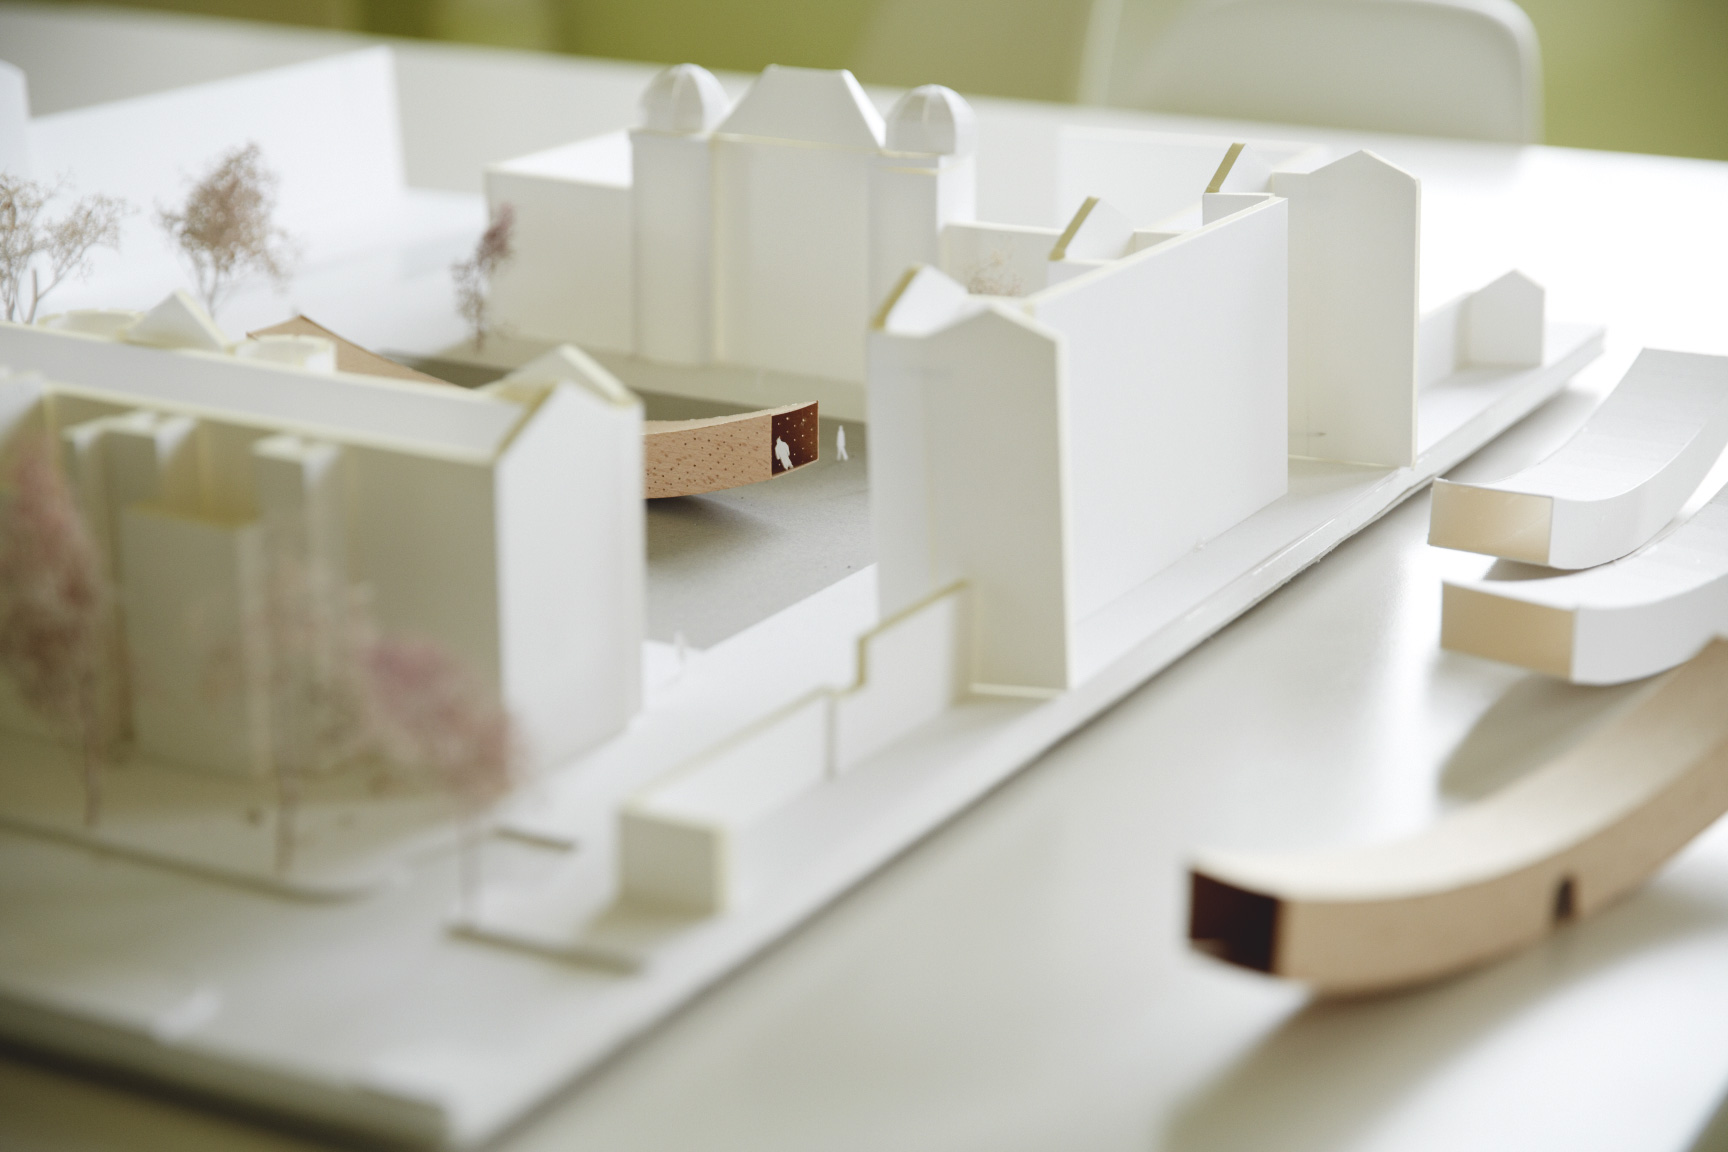 Design process of The Smile by Alison Brooks Architects © Jon Cardwell